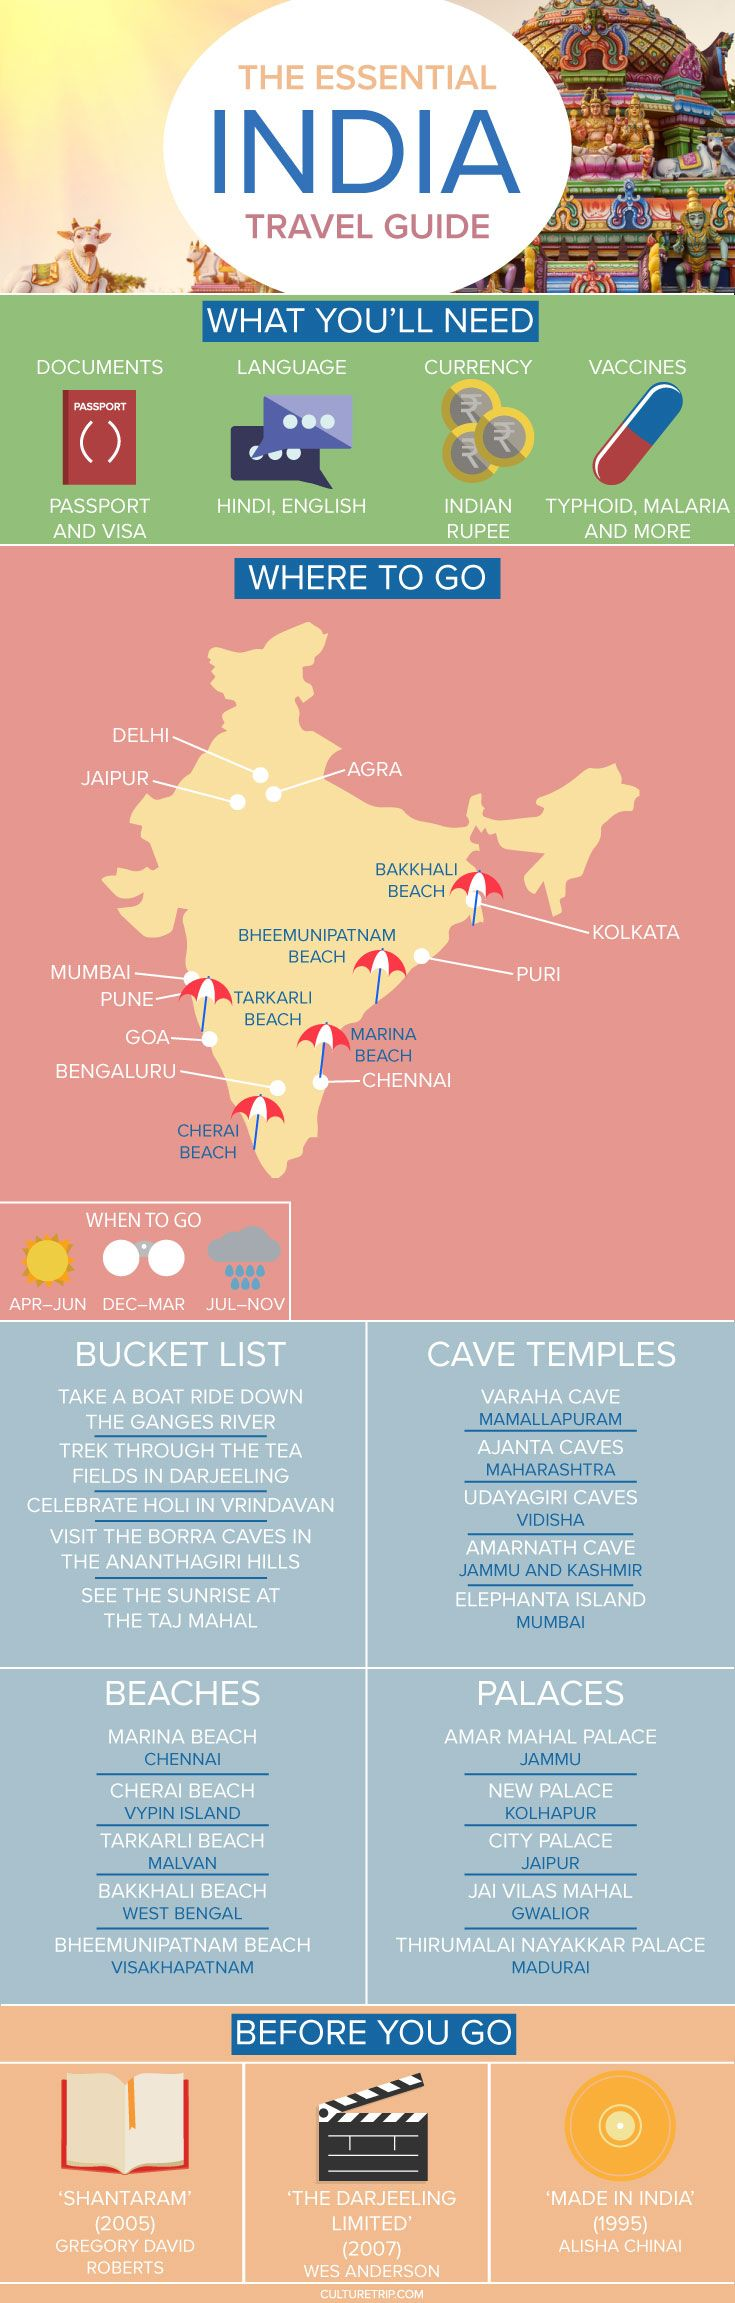 California Map Hwy 99%0A The Essential Travel Guide to India  Infographic